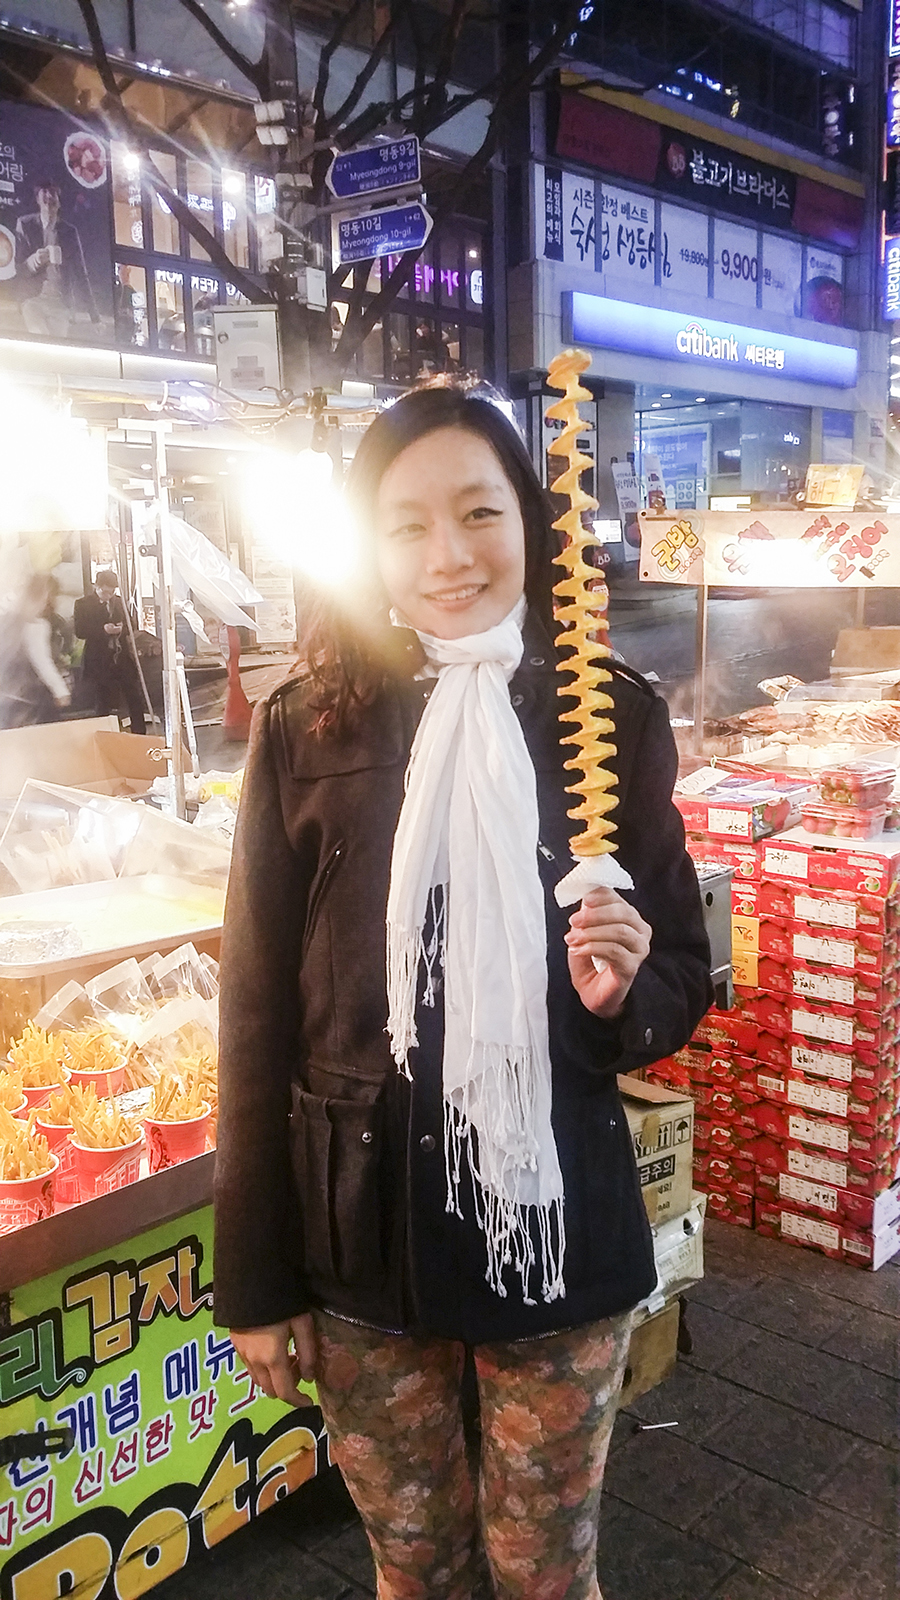 Me with a twistie potato stick in Myeongdong, Seoul, South Korea.